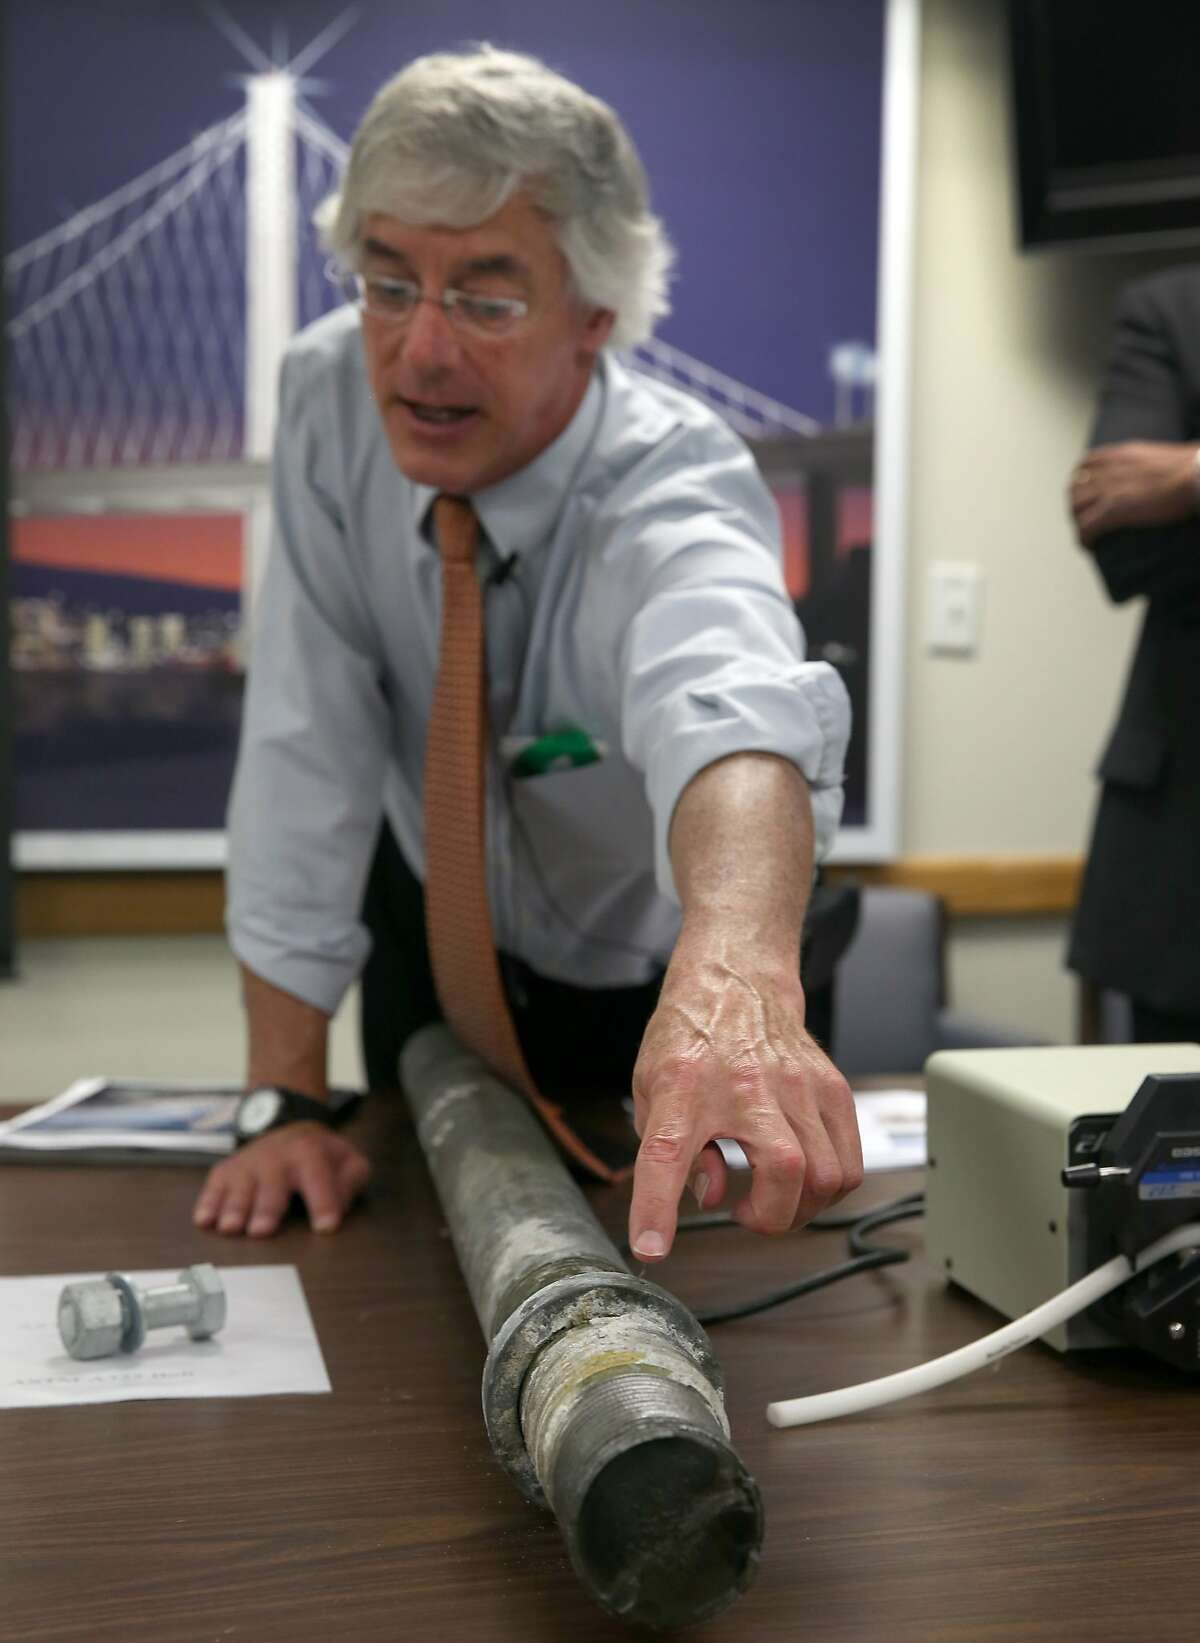 Caltrans engineer Brian Maroney displays a three-inch rod which was found to be broken from the base of the SAS tower of the new Bay Bridge, during a news conference in Oakland, Calif. on Wednesday, May 20, 2015. The rod was removed from the tower and will be sent to a lab for analysis.